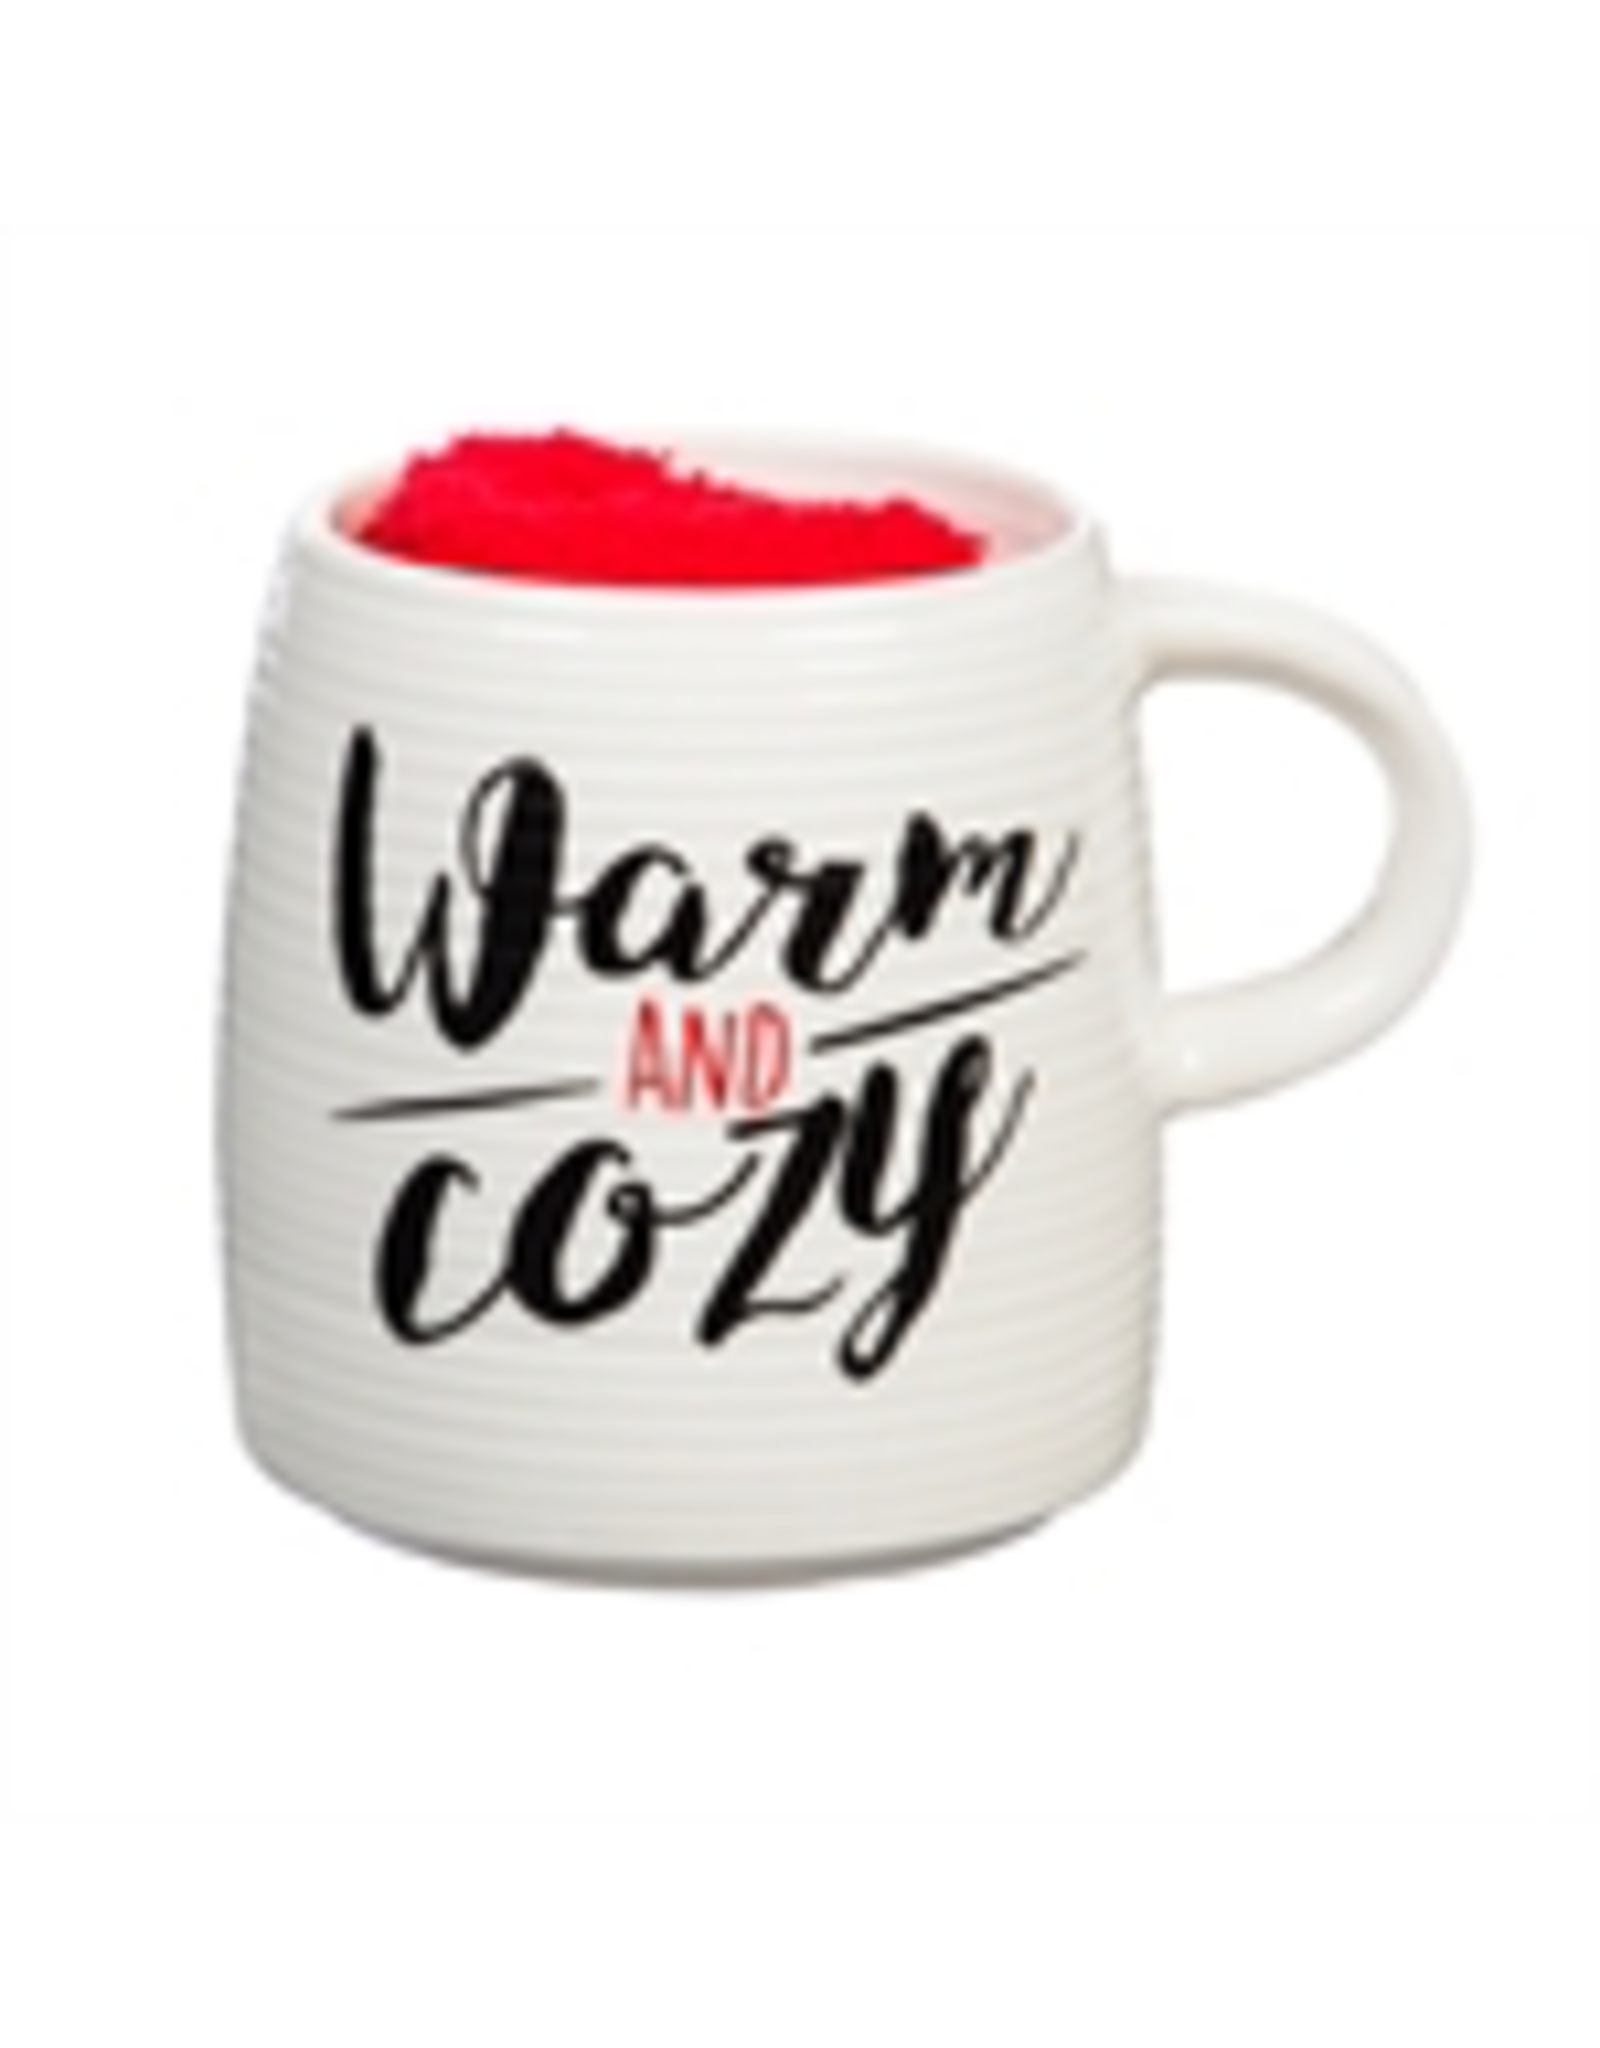 Evergreen Enterprises Ceramic Cup and Sock Gift set, Warm and Cozy